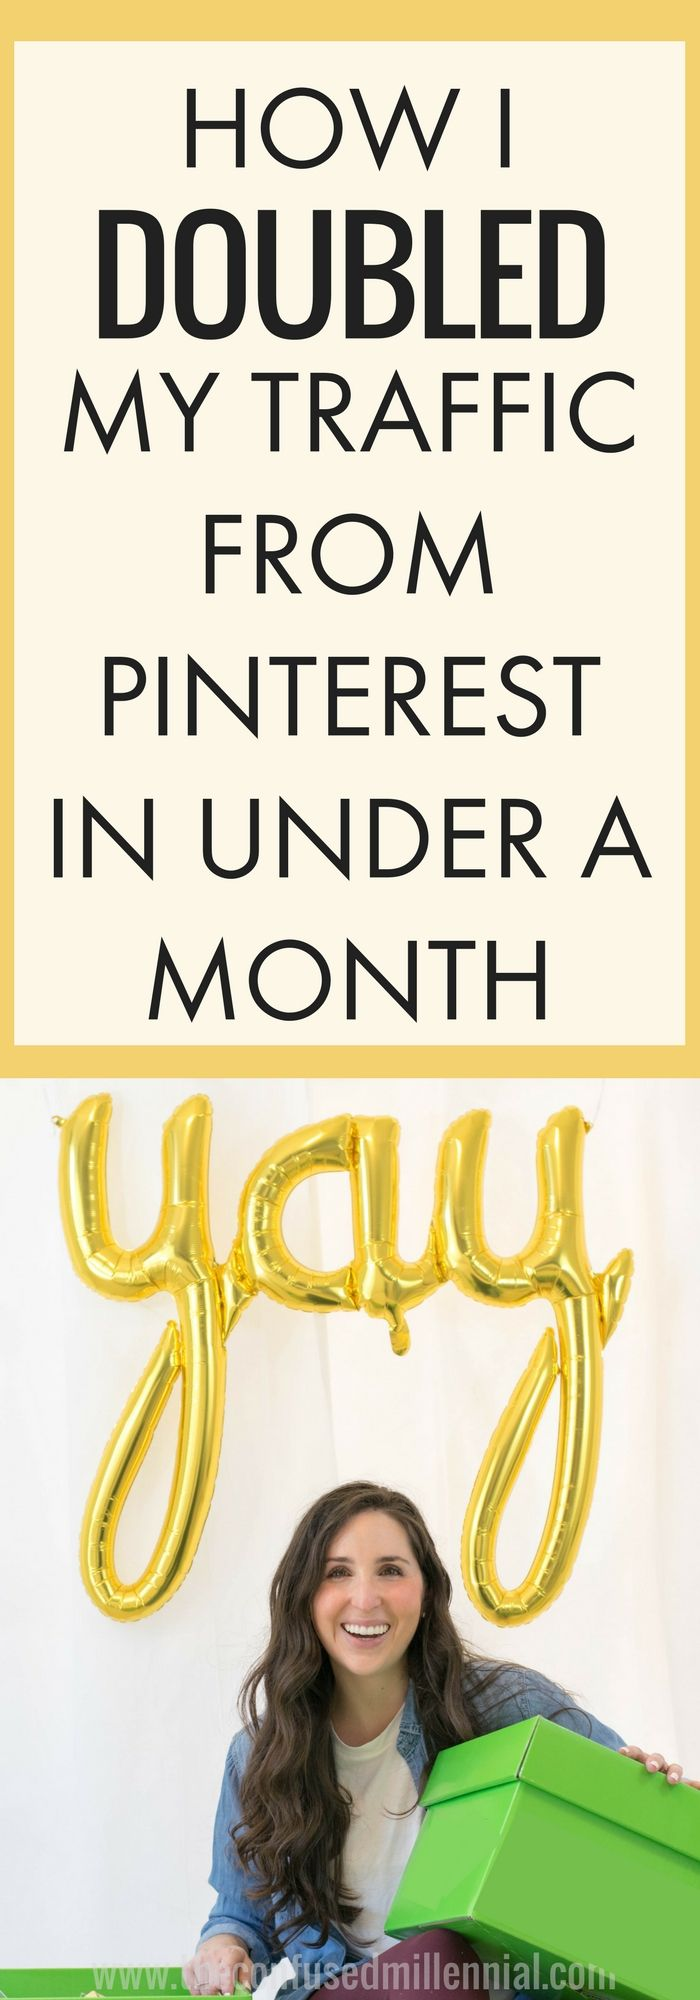 pinterest strategy for business, traffic from pinterest, pinterest marketing strategies, grow blog pageviews, [affiliate]